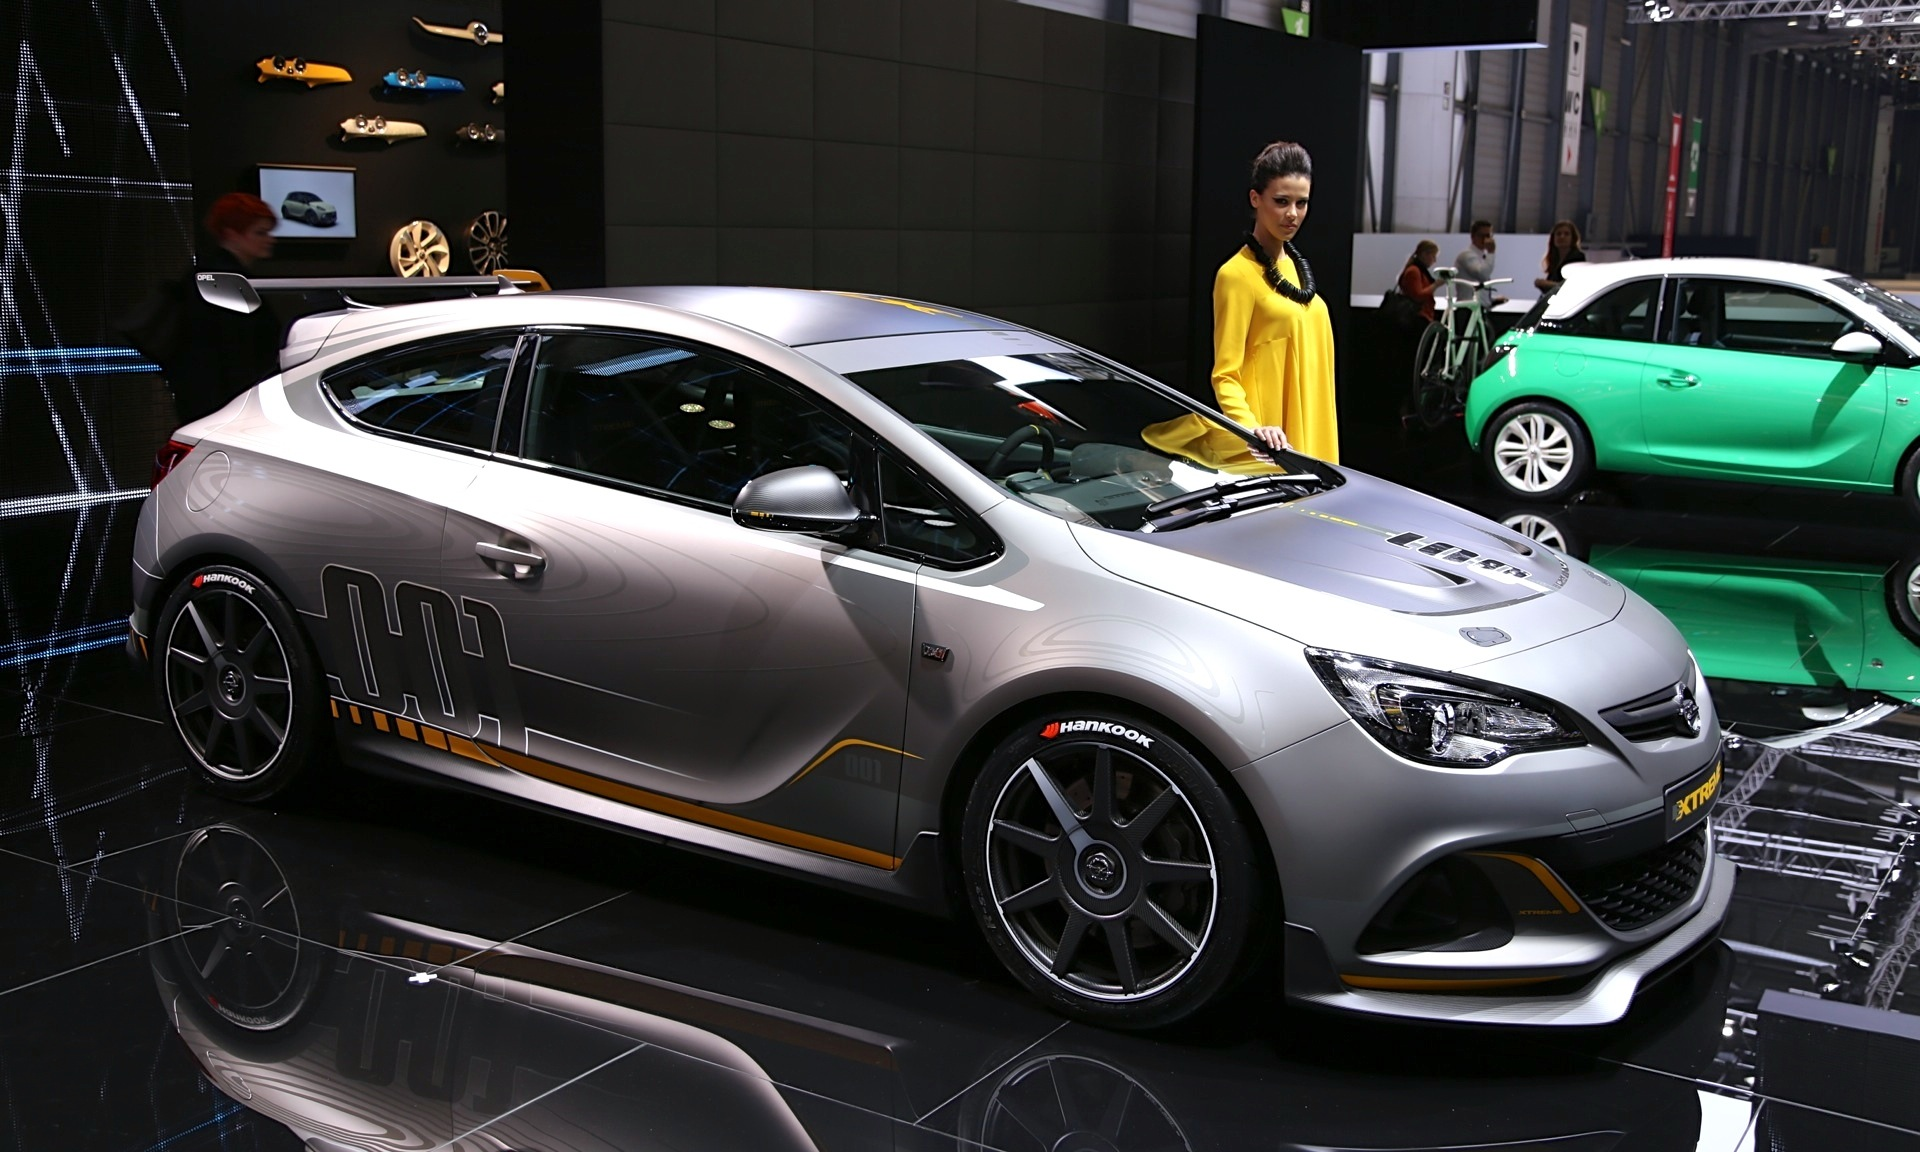 Opel Astra H Interior >> Opel Astra OPC Extreme Road-Going Racer: Live Photos And Video From Geneva